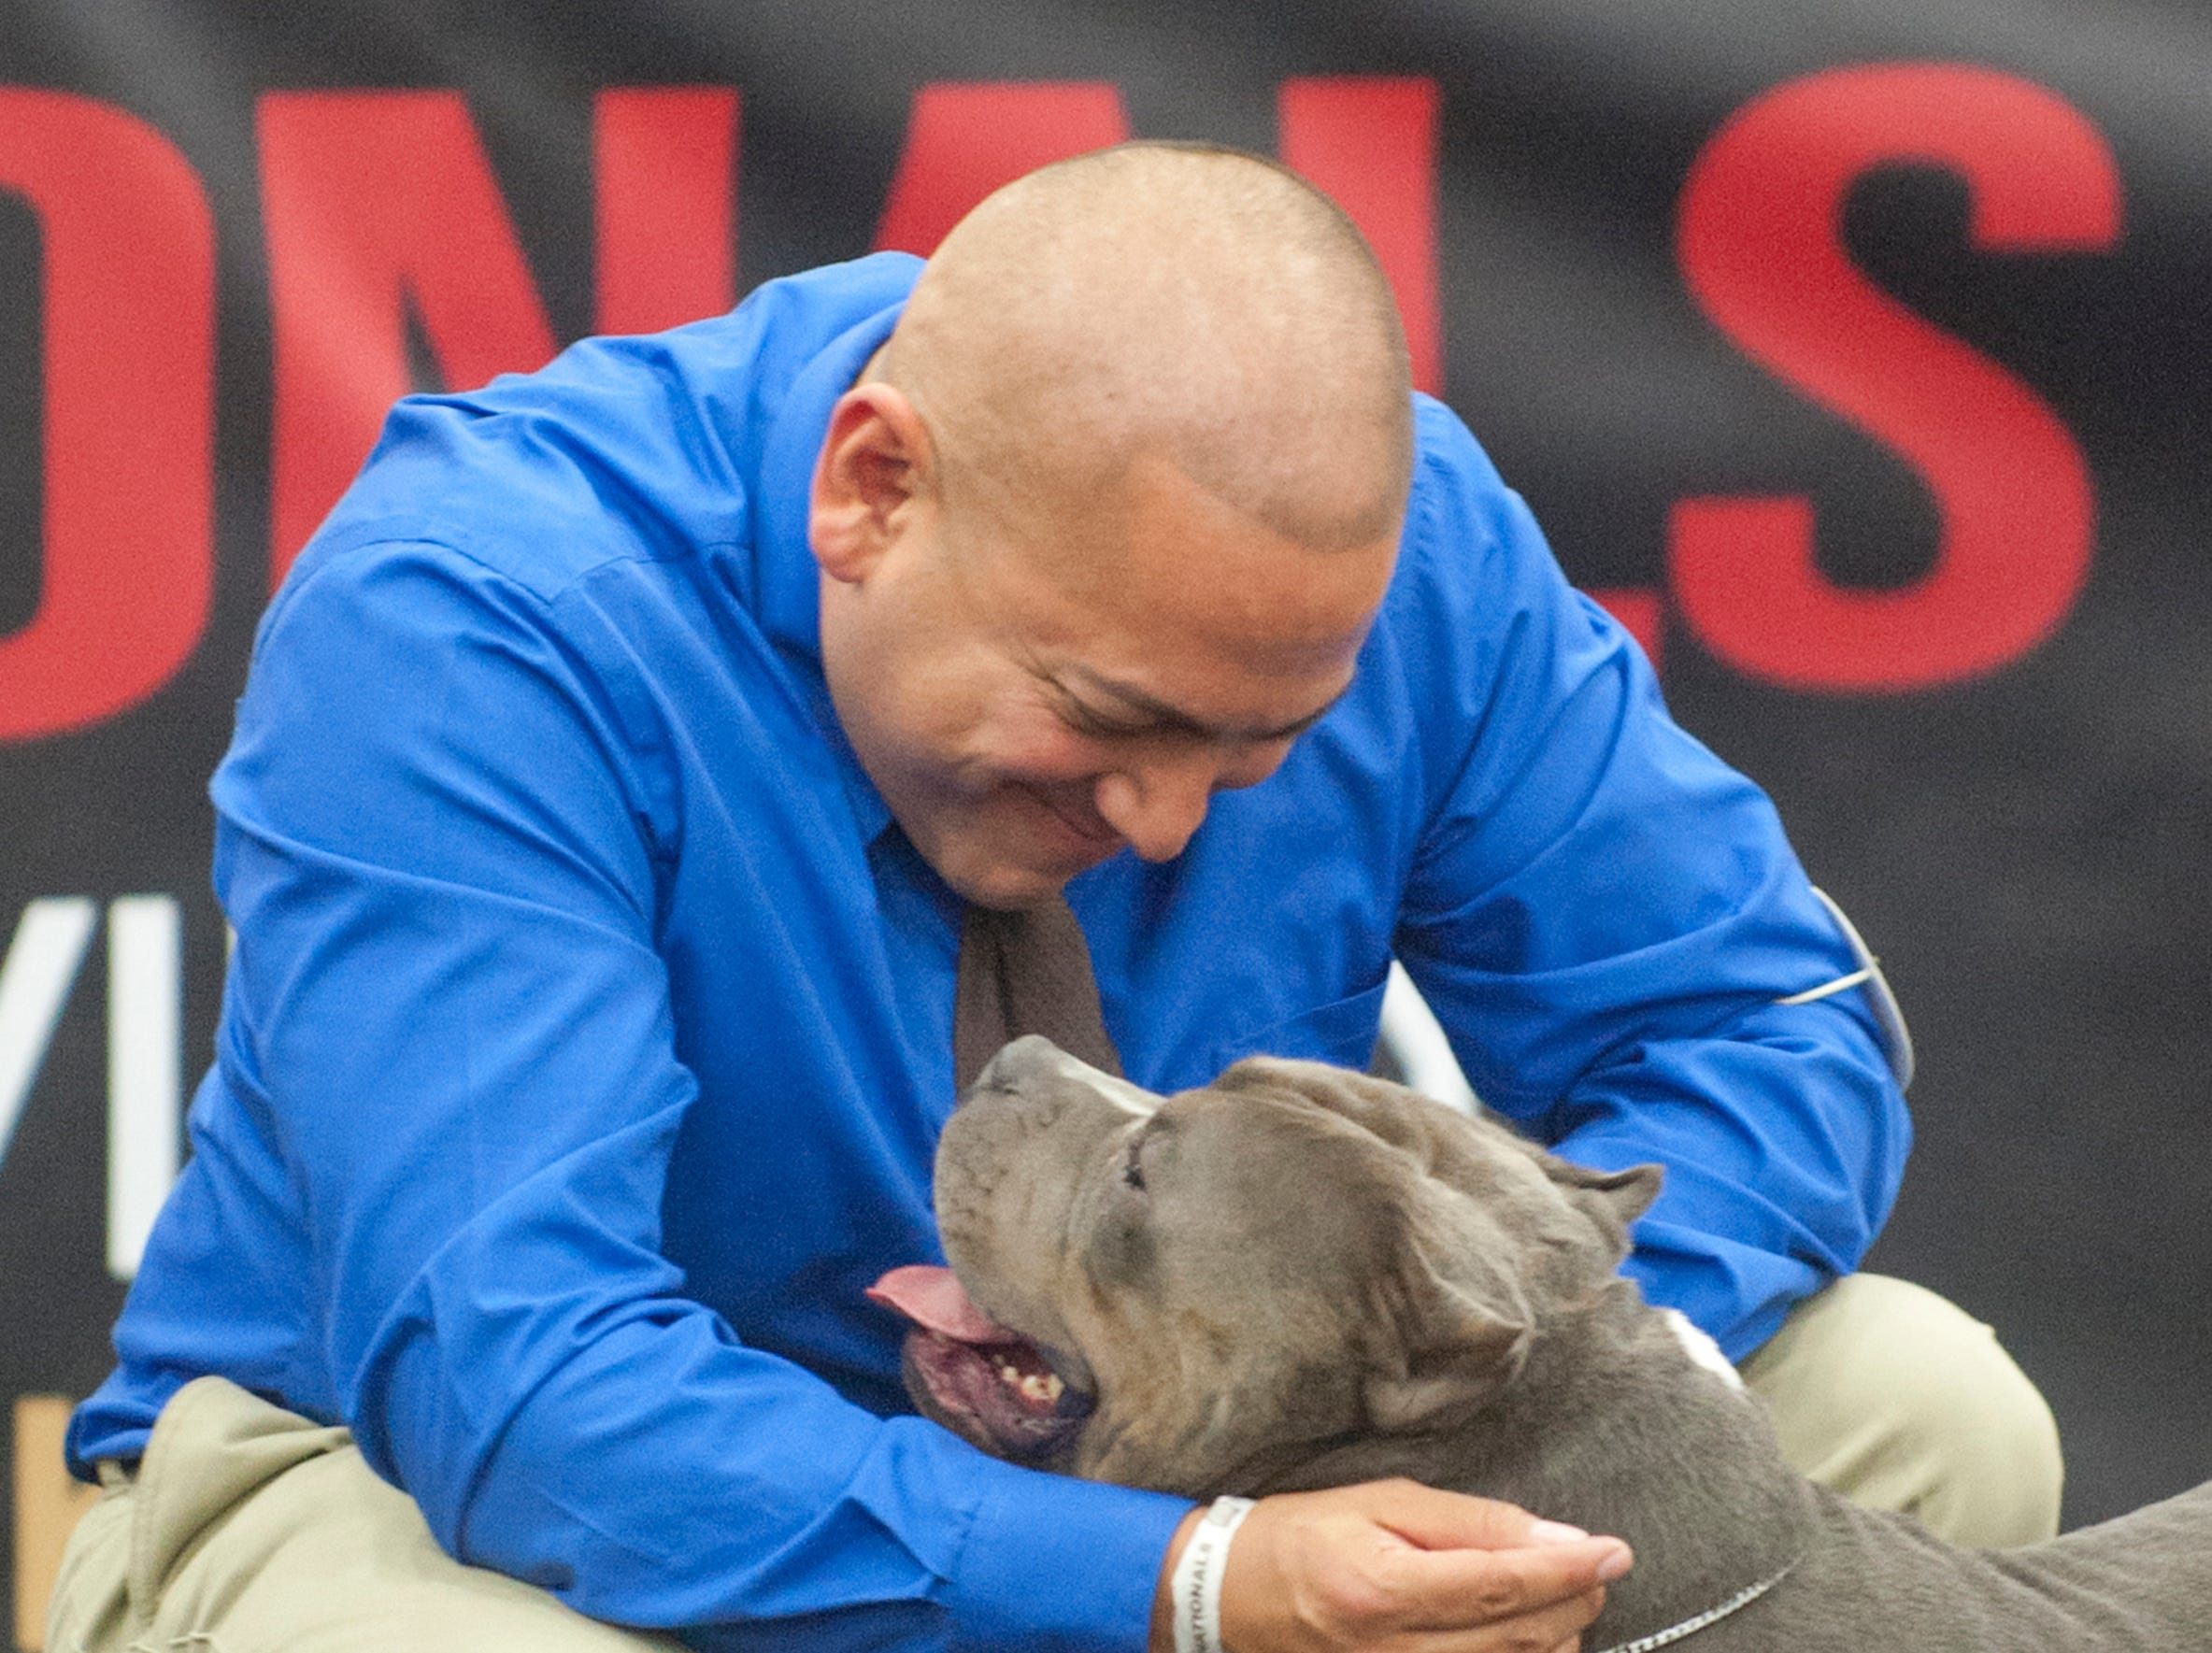 Michael Mata of Winner's Circle Kennels of Cheyenne, WY, hugs his dog Bullgari after placing 2nd in the pocket bull (ages 1-2) category during the 2018 American Bully Kennel Club's 12th annual confirmation event at the Kentucky Convention Center in Louisville.November 10, 2018